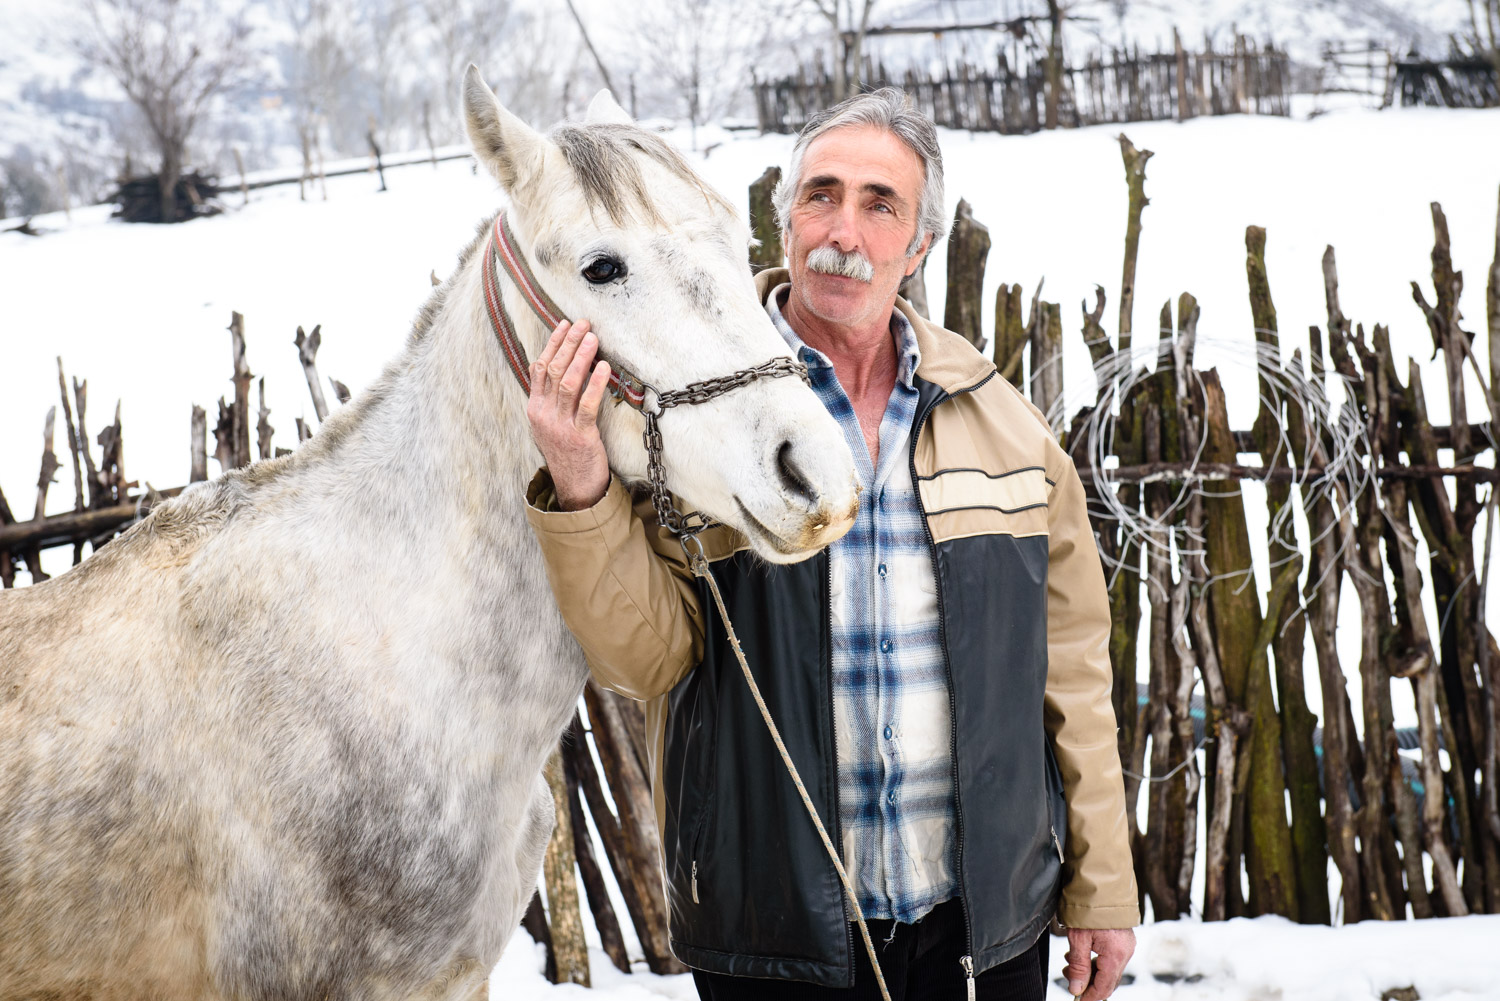 Zeynur Eroglu, with his horse, in Sorsvenk village.